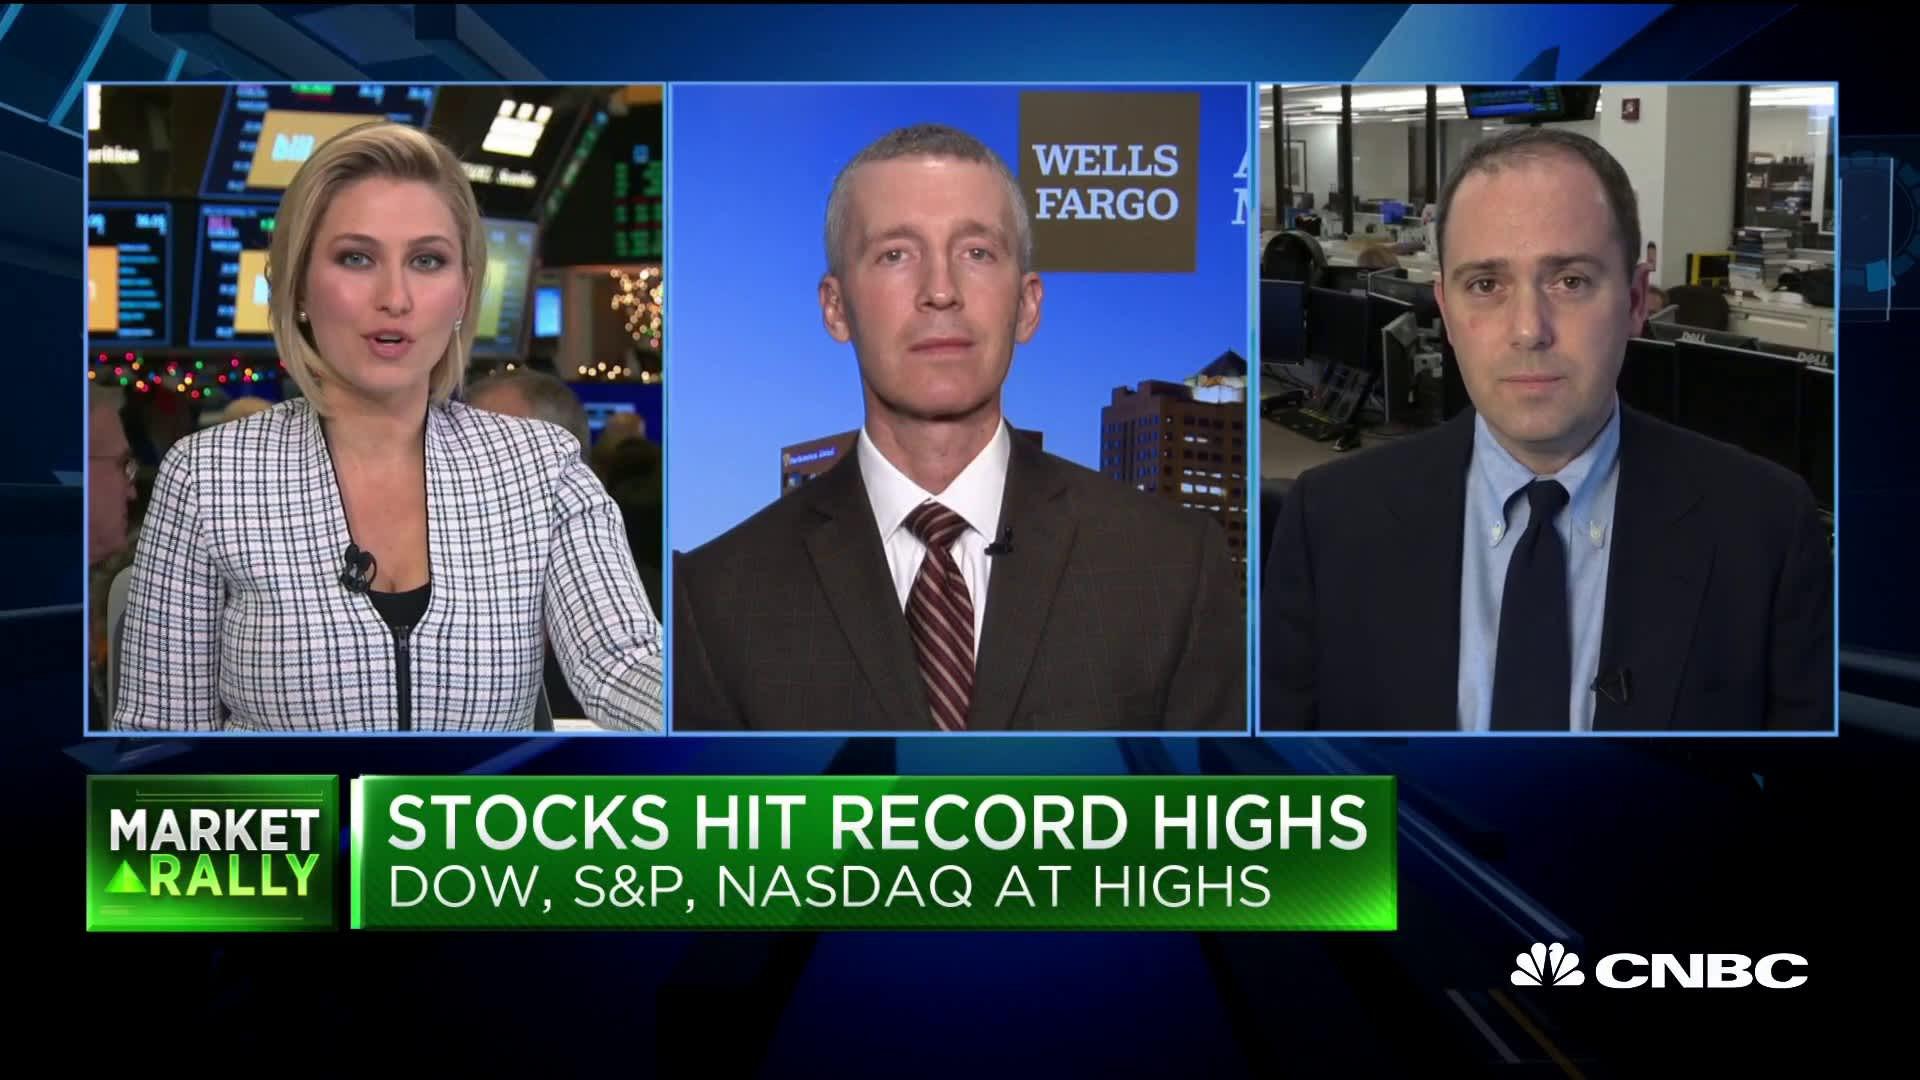 Market run-up due to improvement in trade sentiment, fundamentals: Wells Fargo's Jacobsen